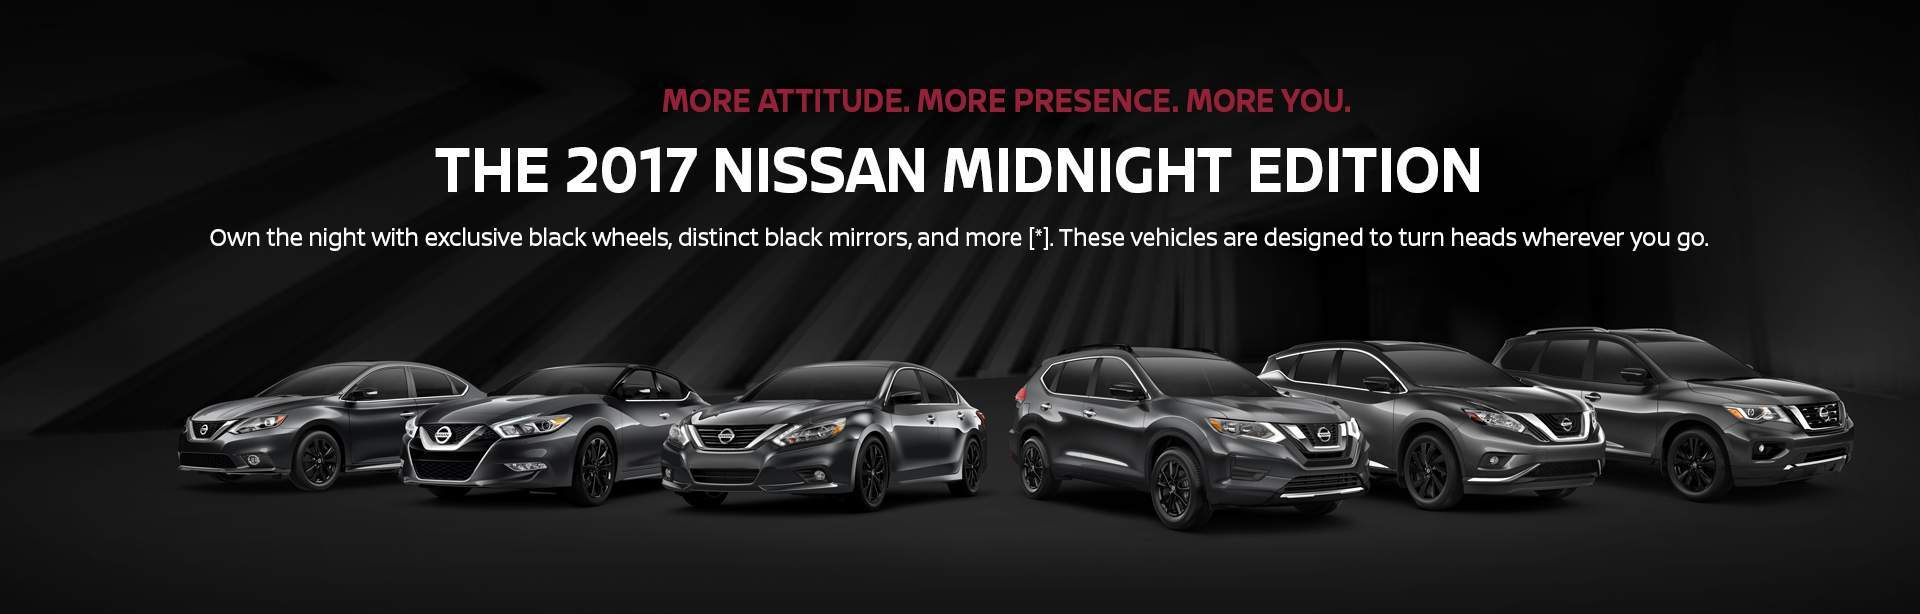 nissan murano midnight edition nissan going rogue nissan debuts star wars edition rogue cuv in. Black Bedroom Furniture Sets. Home Design Ideas